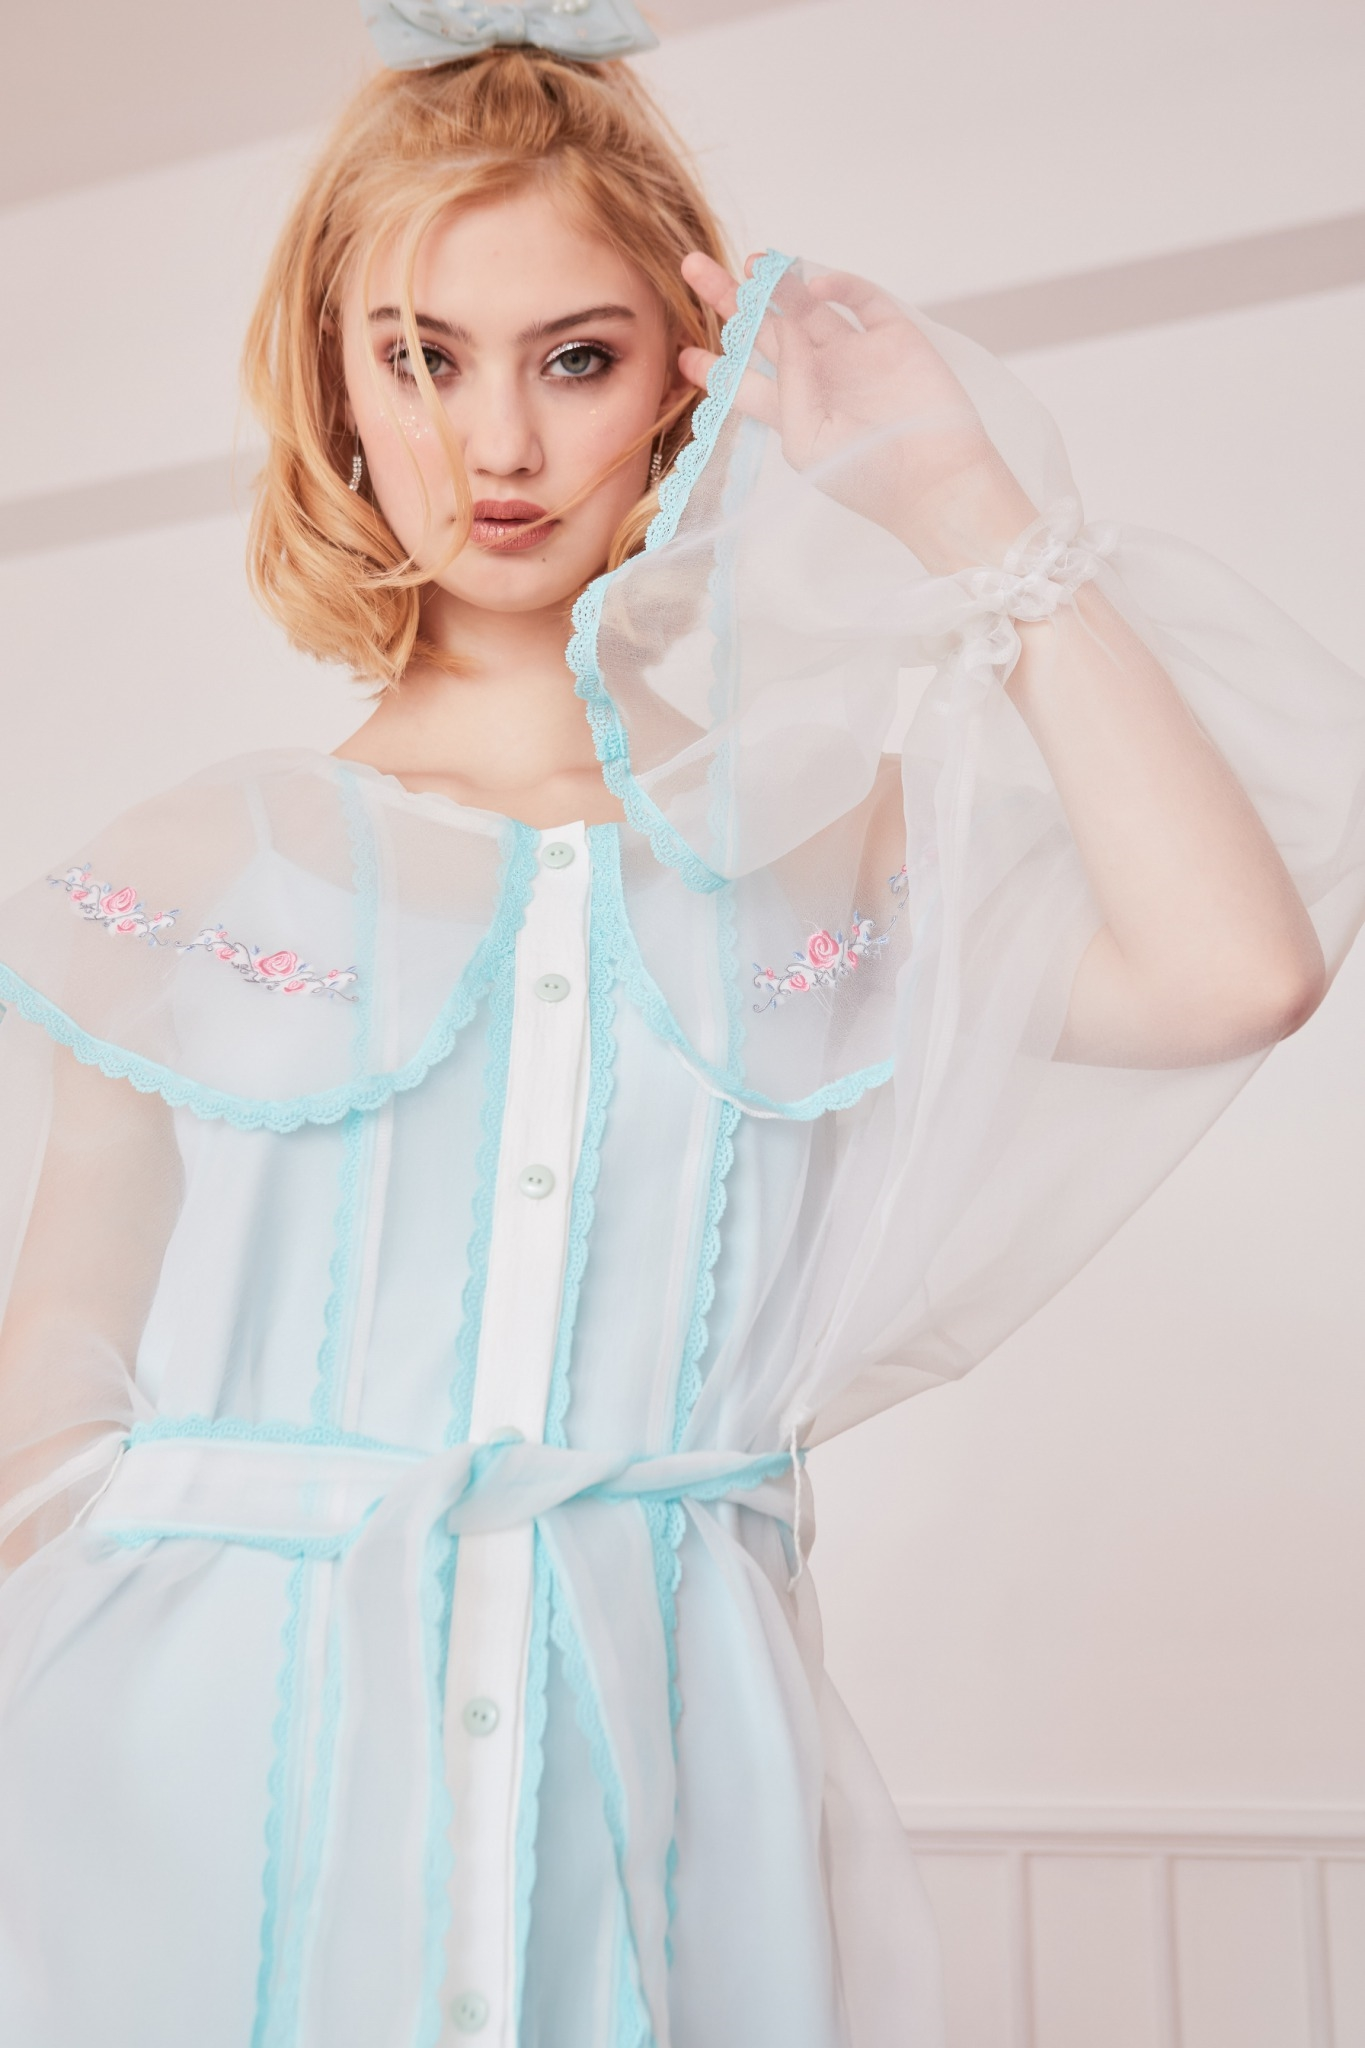 JR05 - Juliet's Rose Embroidered Collar Ruffle Dress - In Stock Now